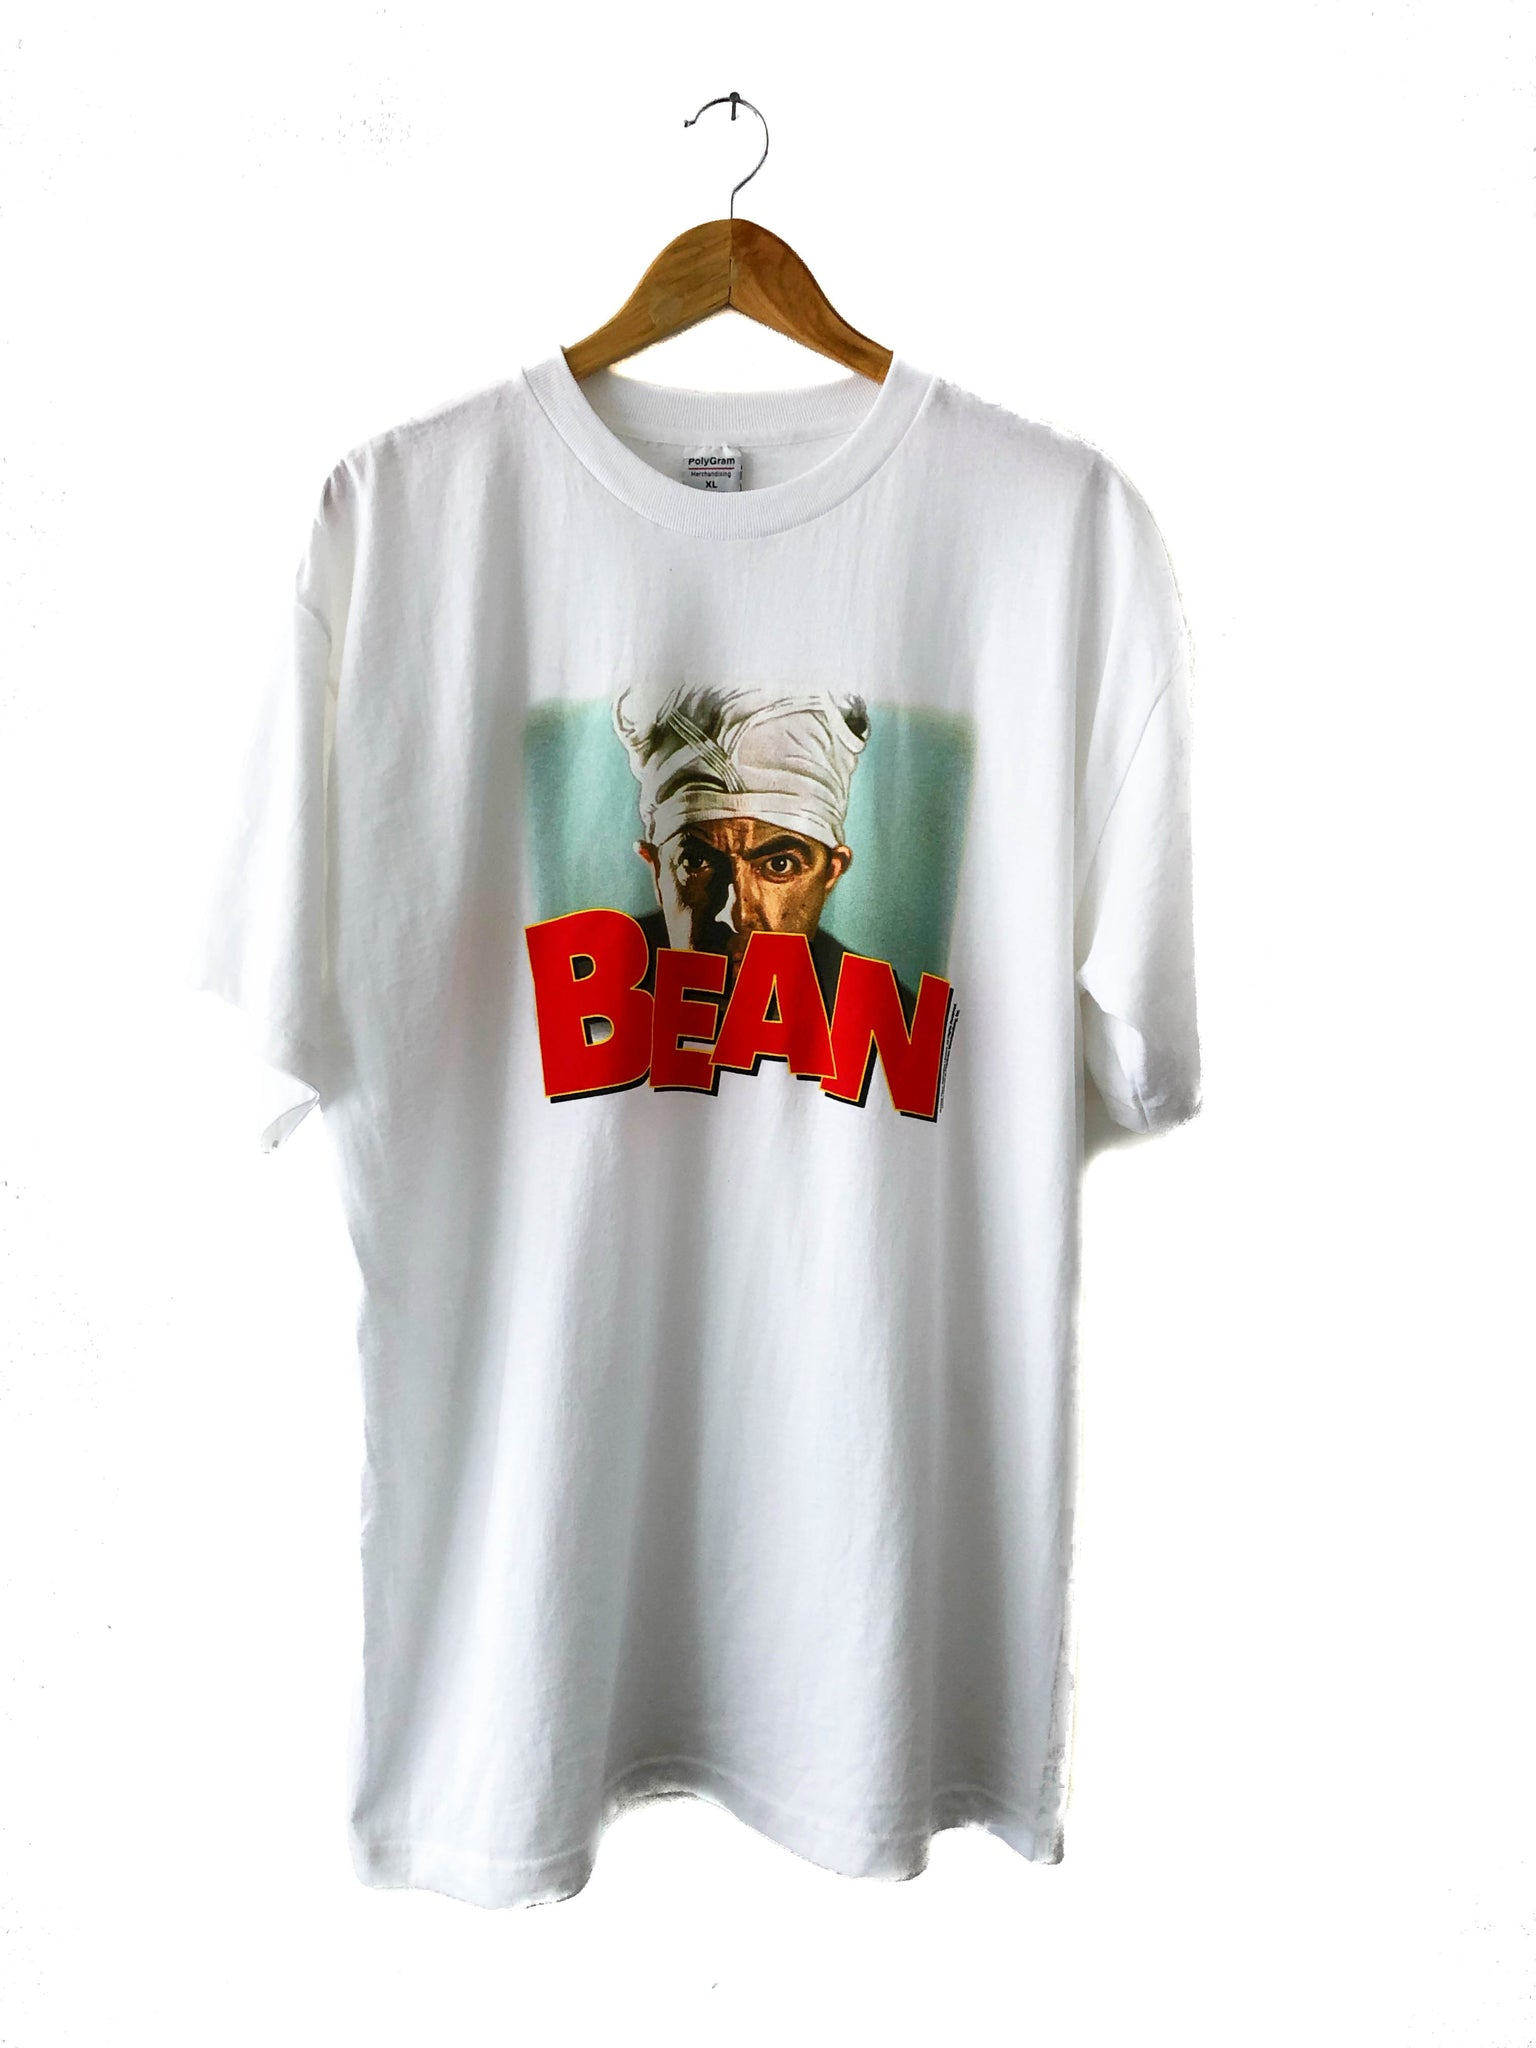 tshirt on hanger showing showing red lettering and mr bean wearing a turban